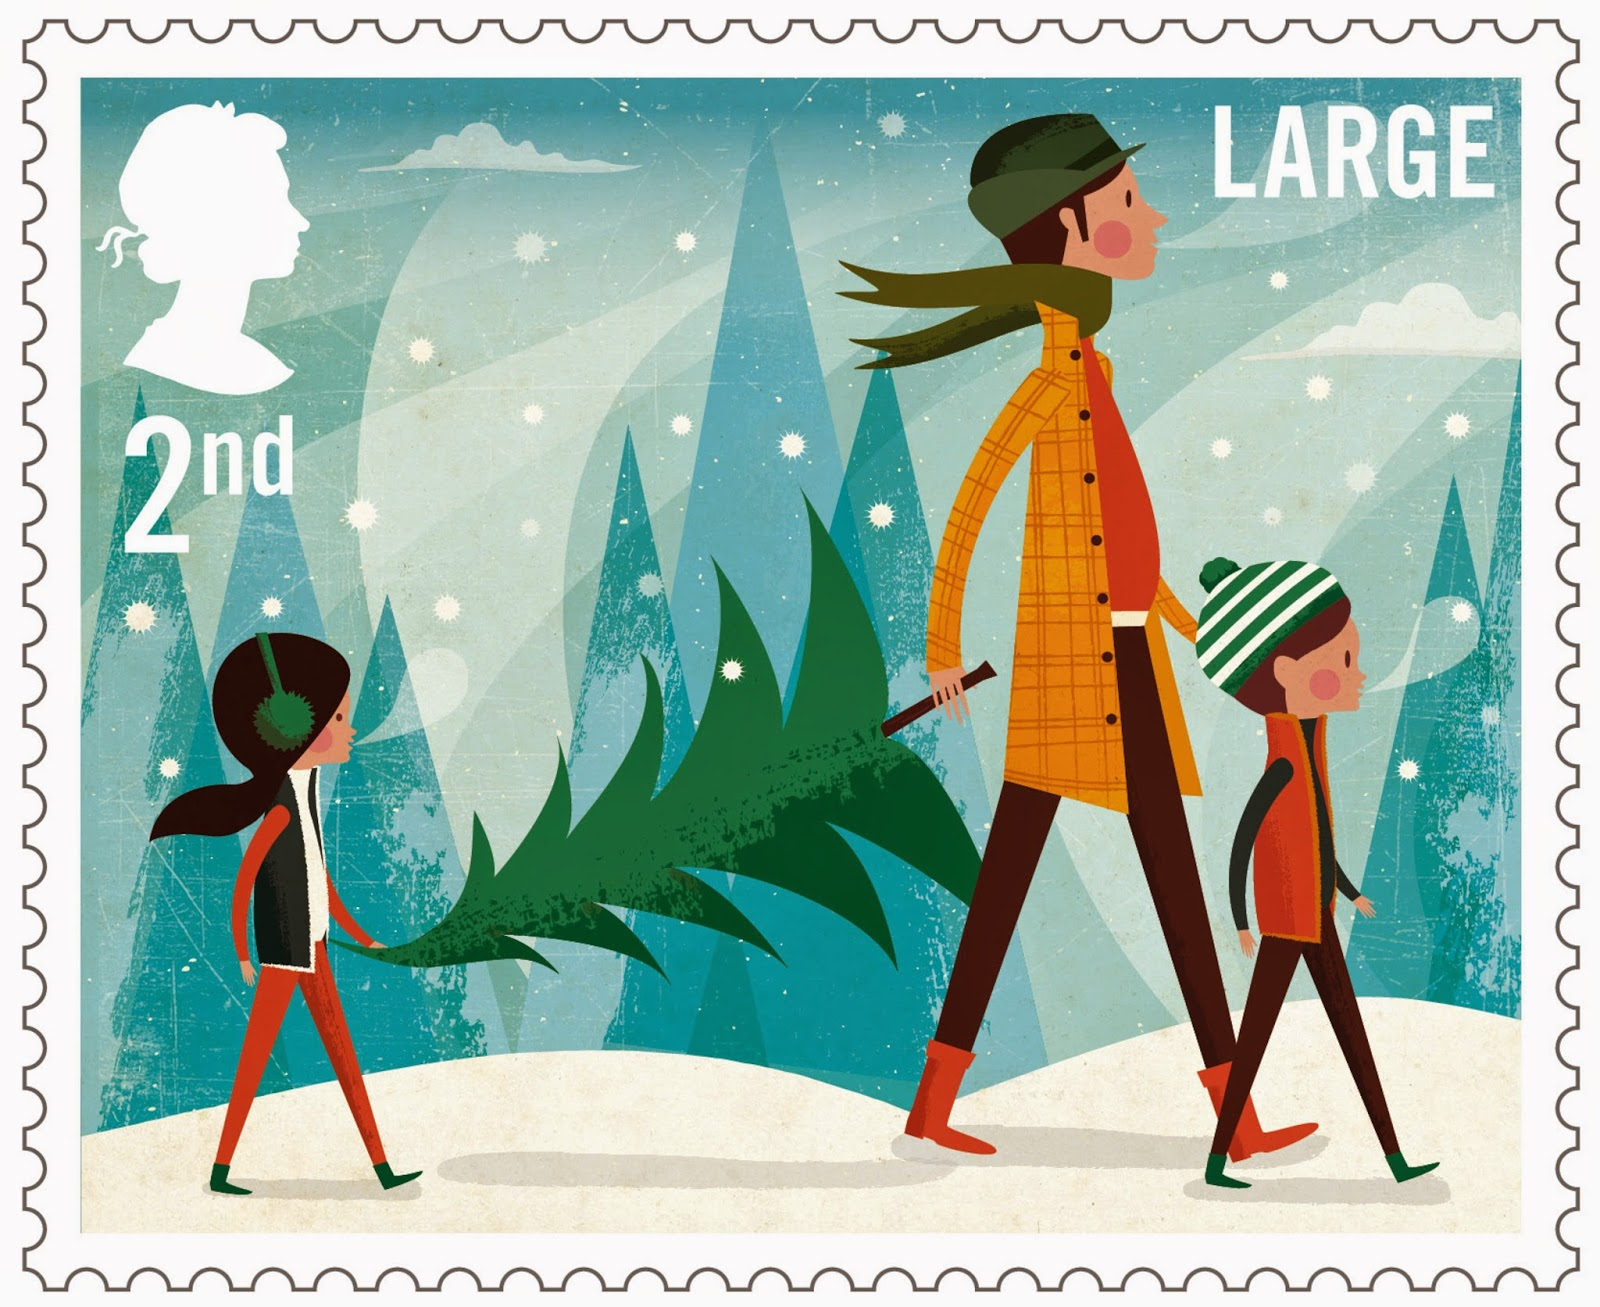 UK Christmas Stamp 2014